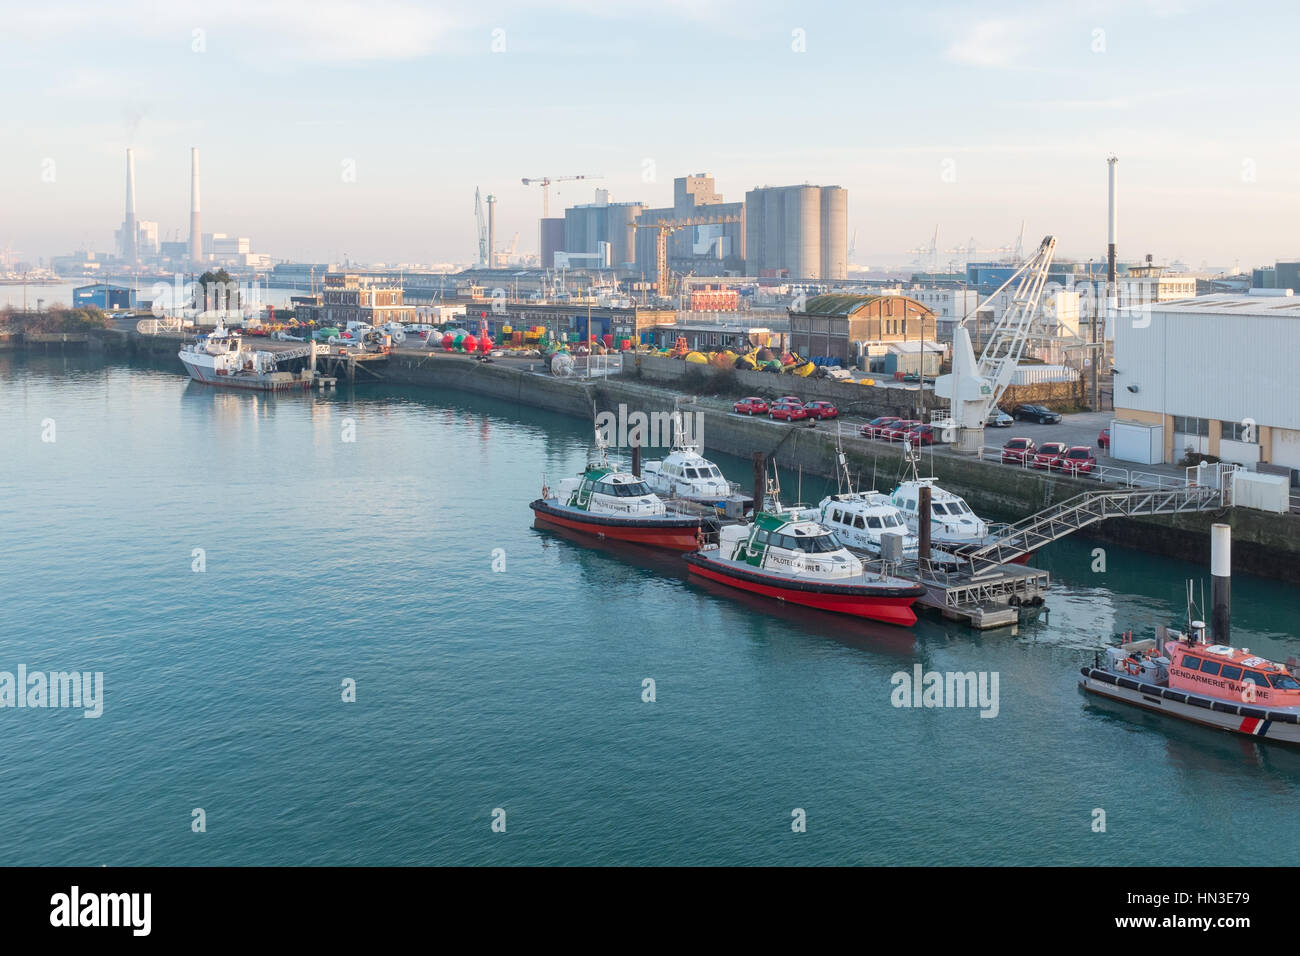 the port of le havre viewed from the deck of a departing brittany stock photo royalty free. Black Bedroom Furniture Sets. Home Design Ideas